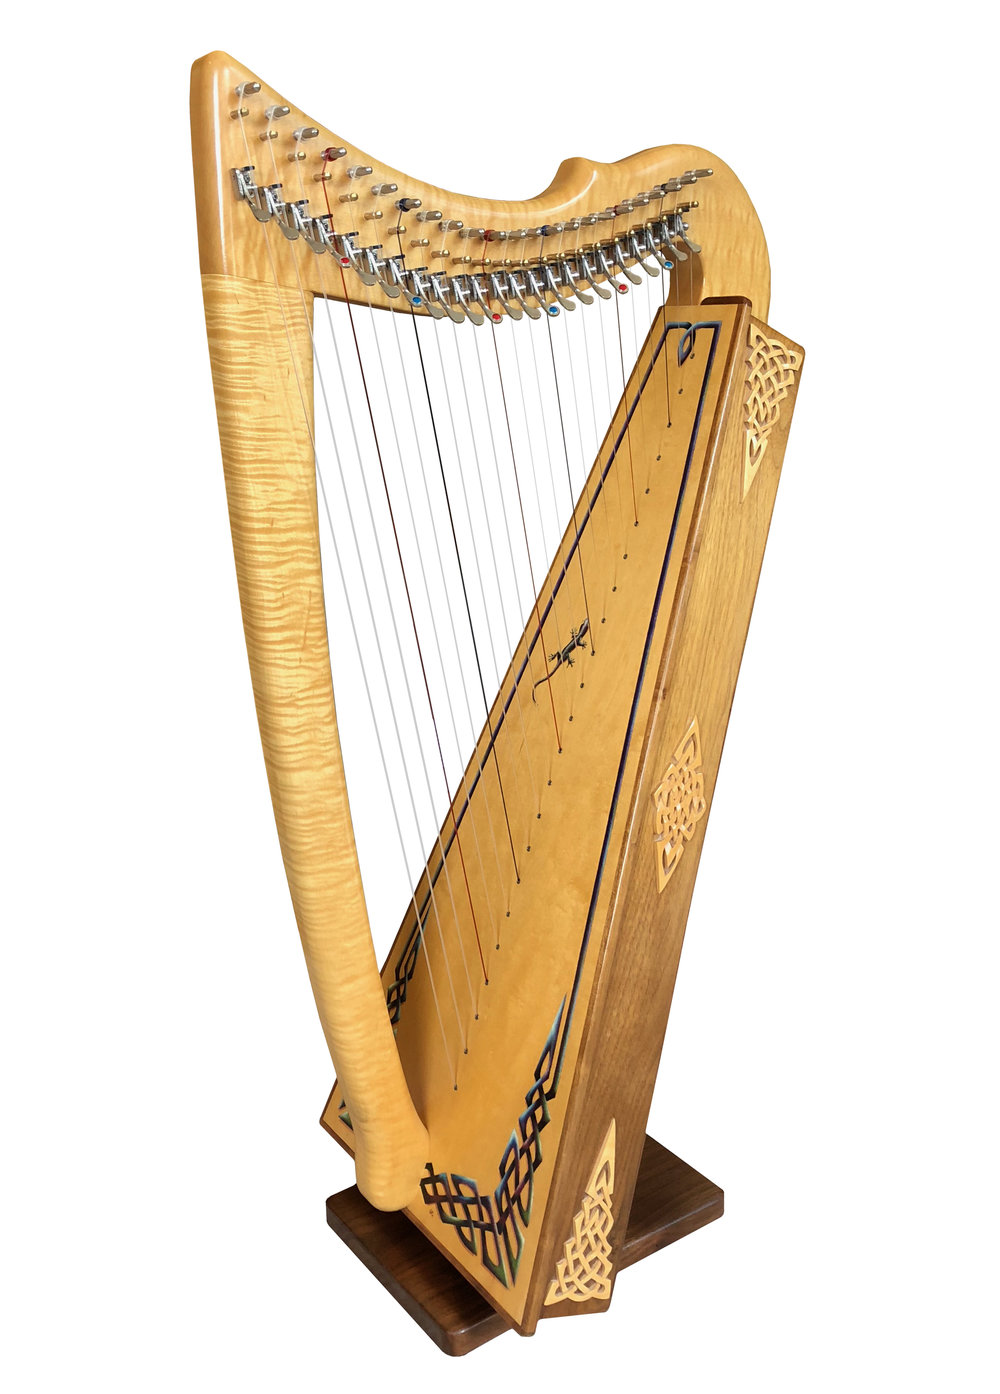 Rees Morgan Meadow in flamed maple and walnut with optional custom ornamentation and full Rees sharping levers. (This is Garen Rees' personal harp.)